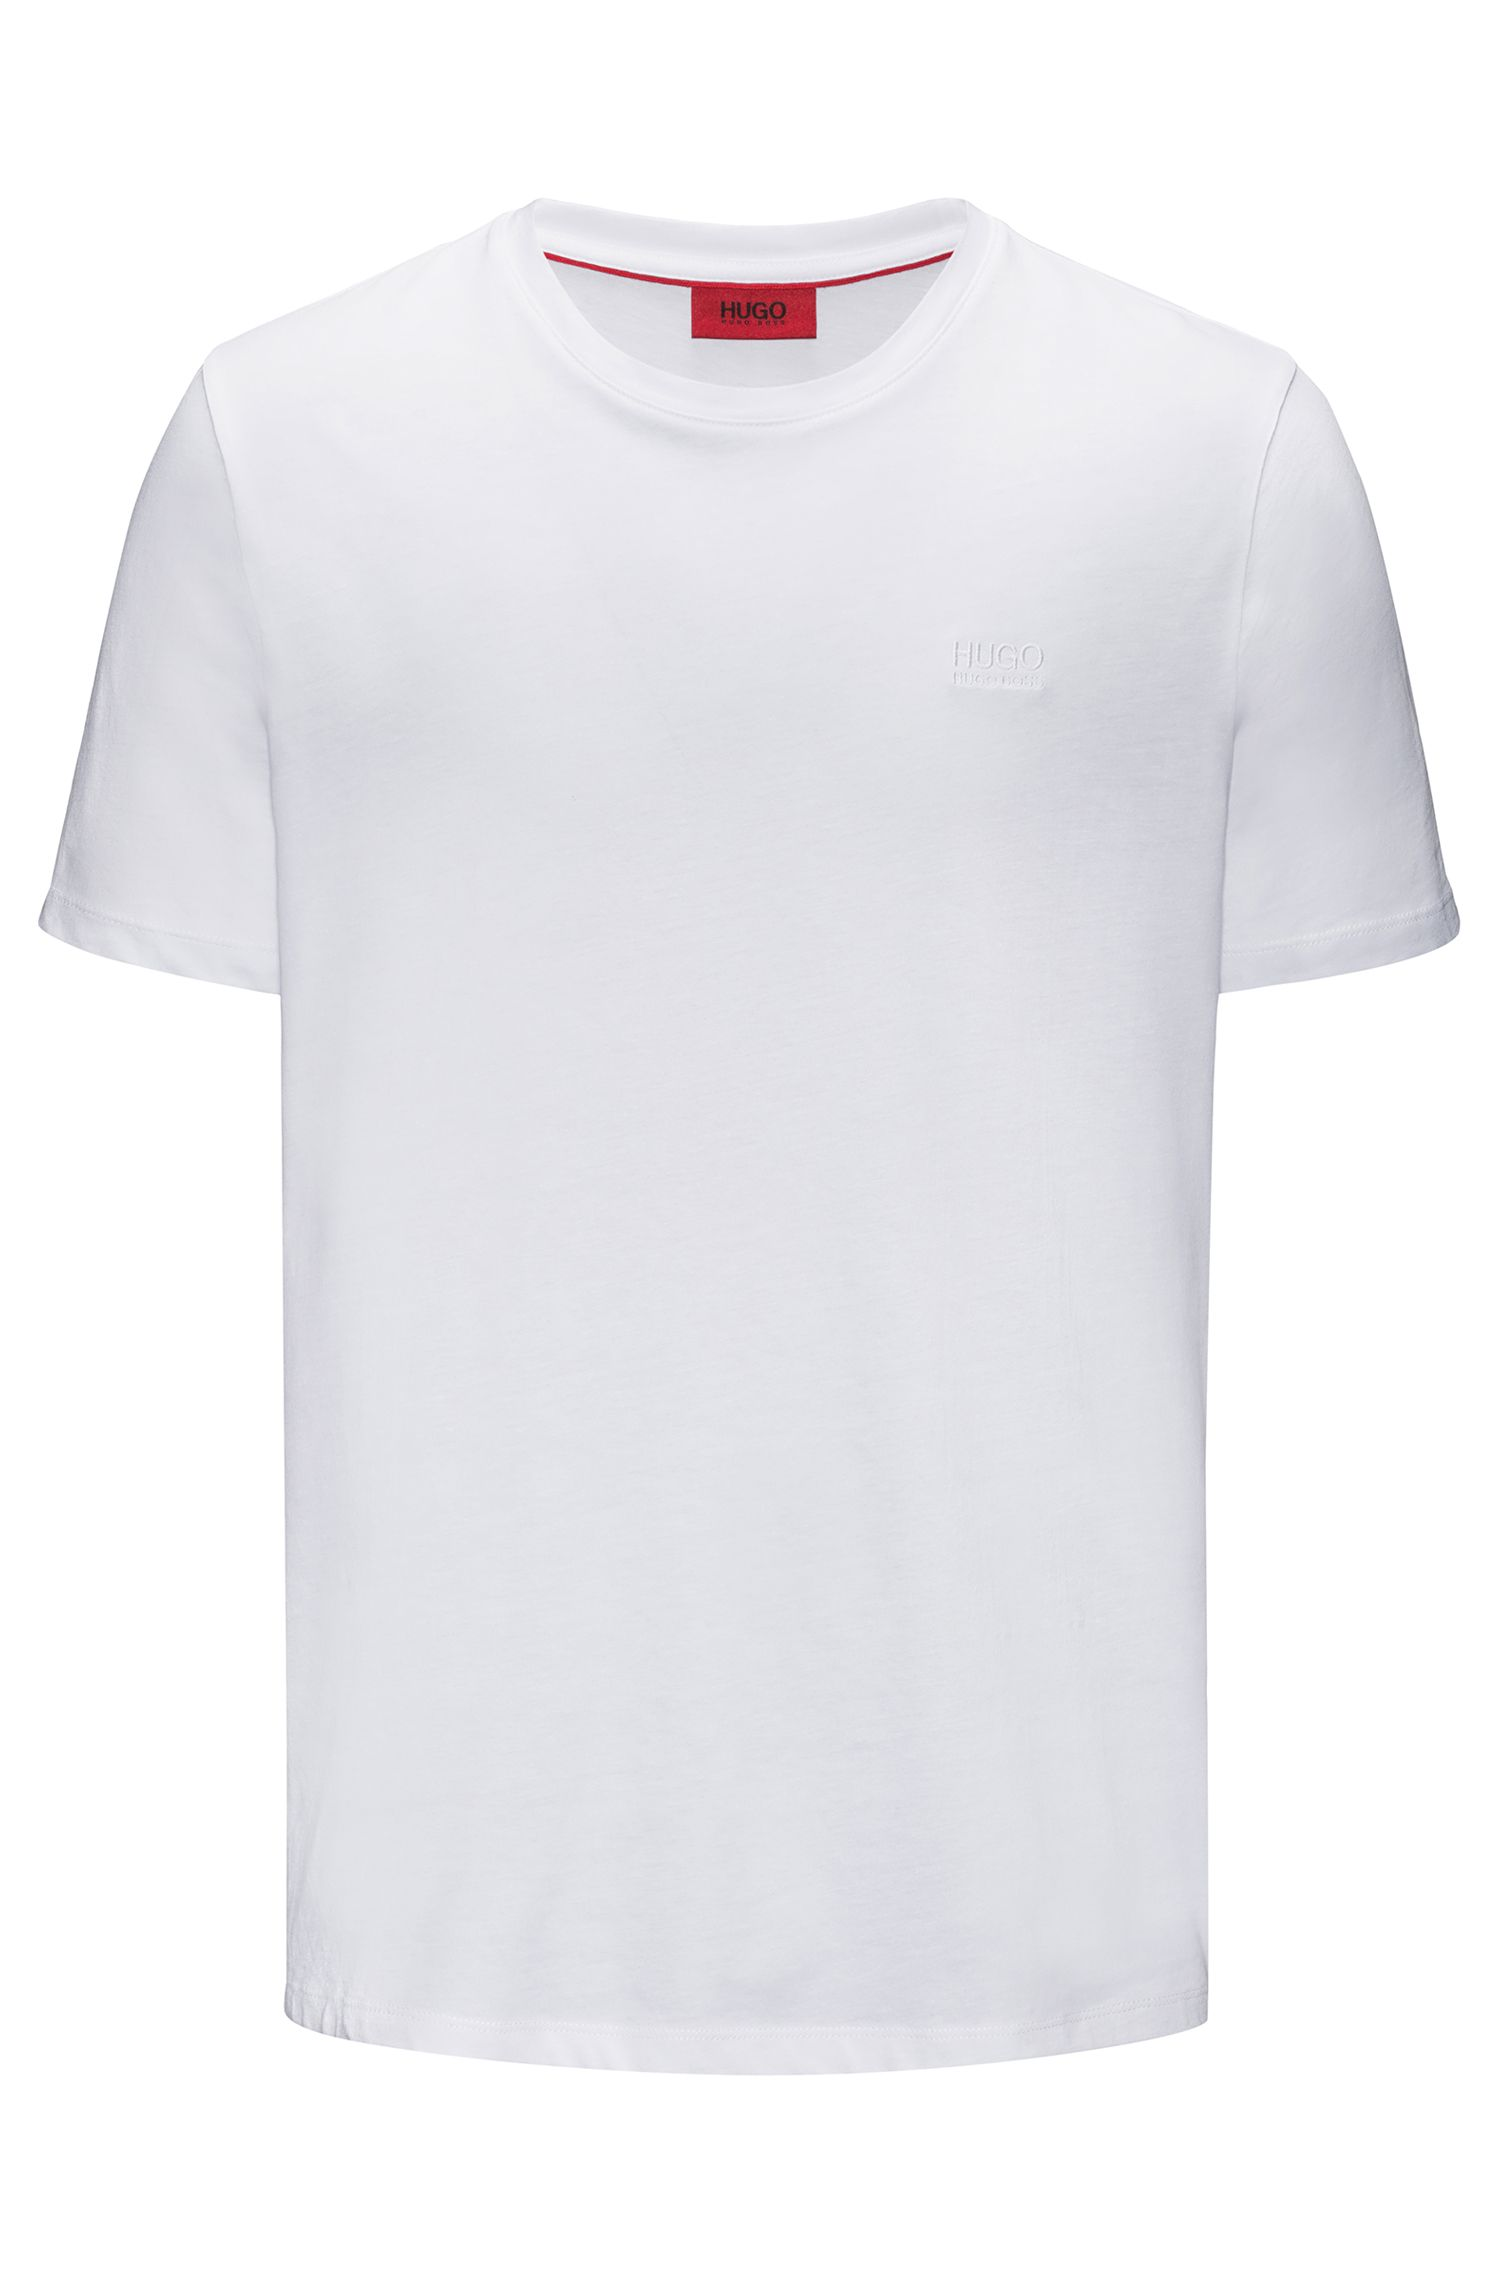 Regular-fit logo T-shirt in soft cotton, White